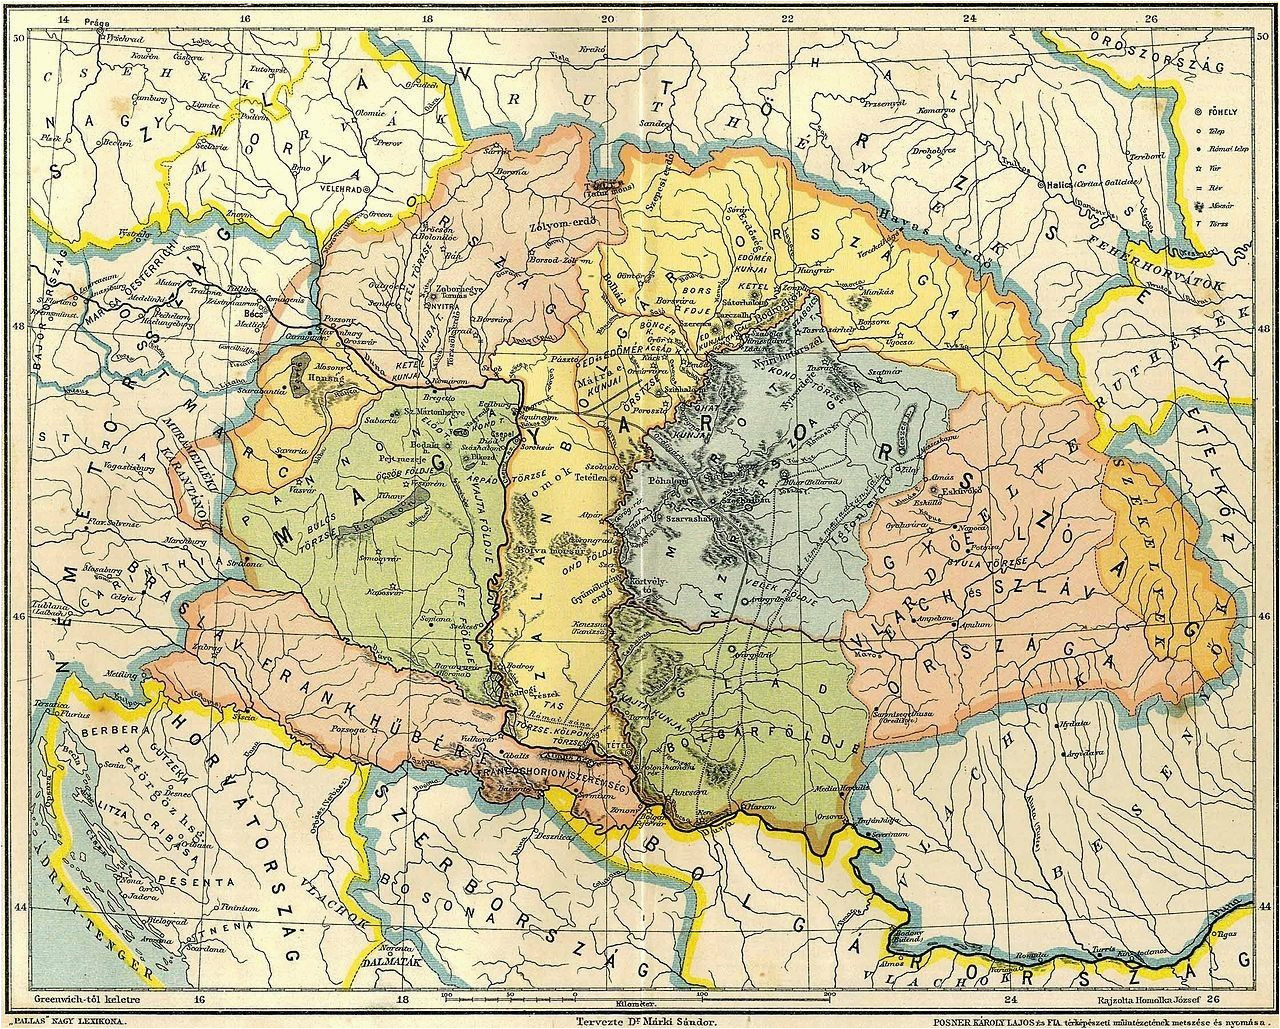 Transylvania Map Of Europe Map Of Central Europe In the 9th Century before Arrival Of